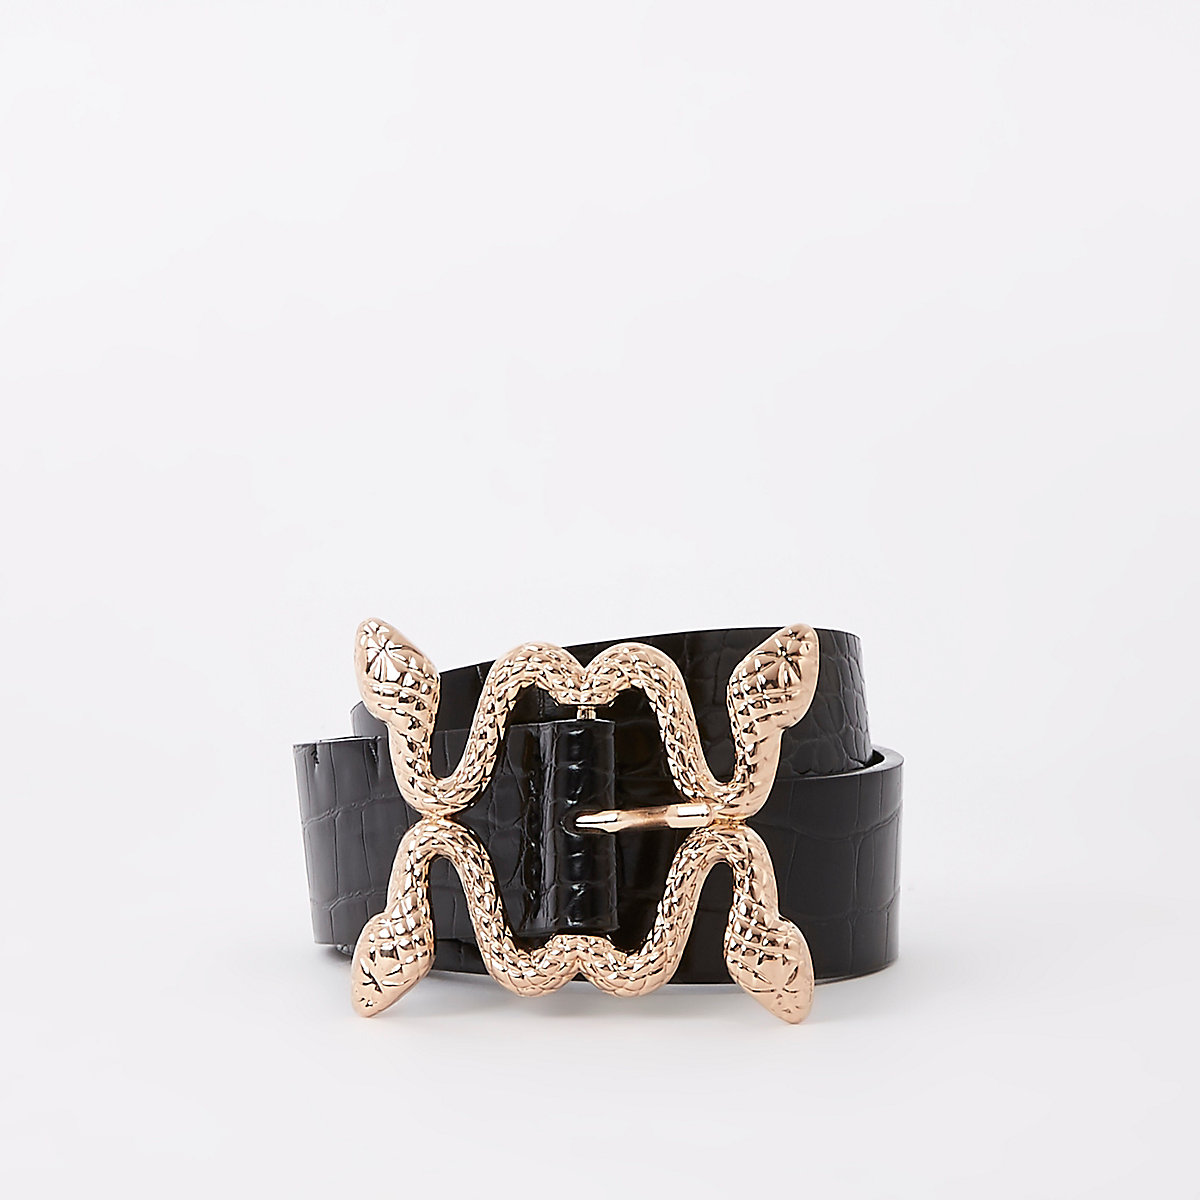 Black croc gold tone snake buckle jeans belt